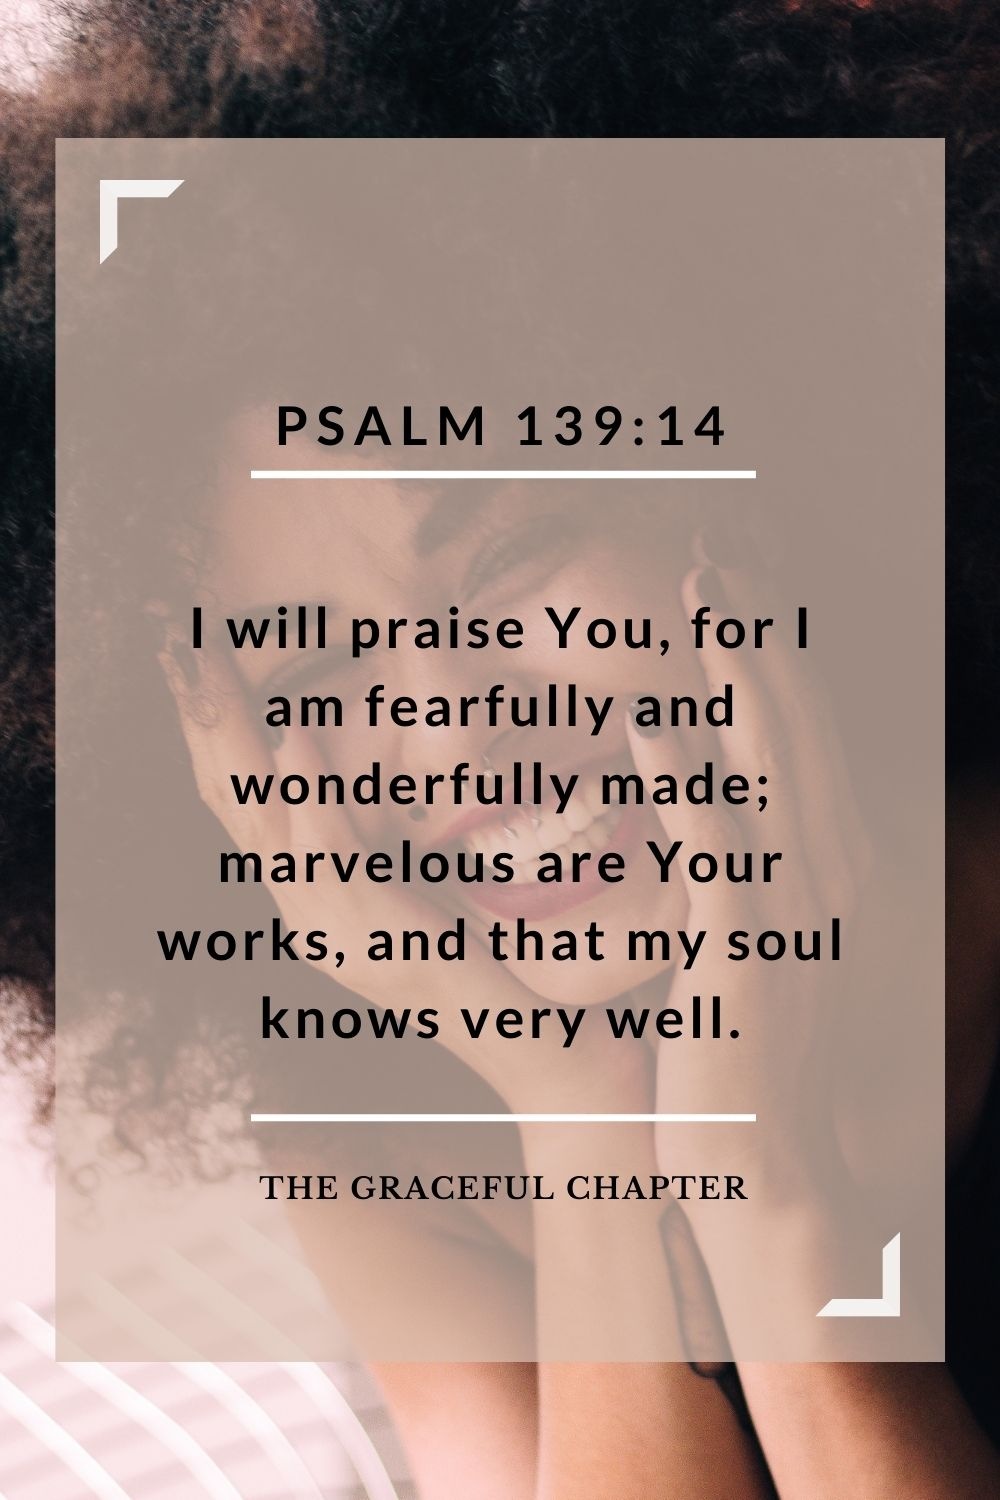 I will praise You, for I am fearfully and wonderfully made; marvelous are Your works, and that my soul knows very well. Psalm 139:14